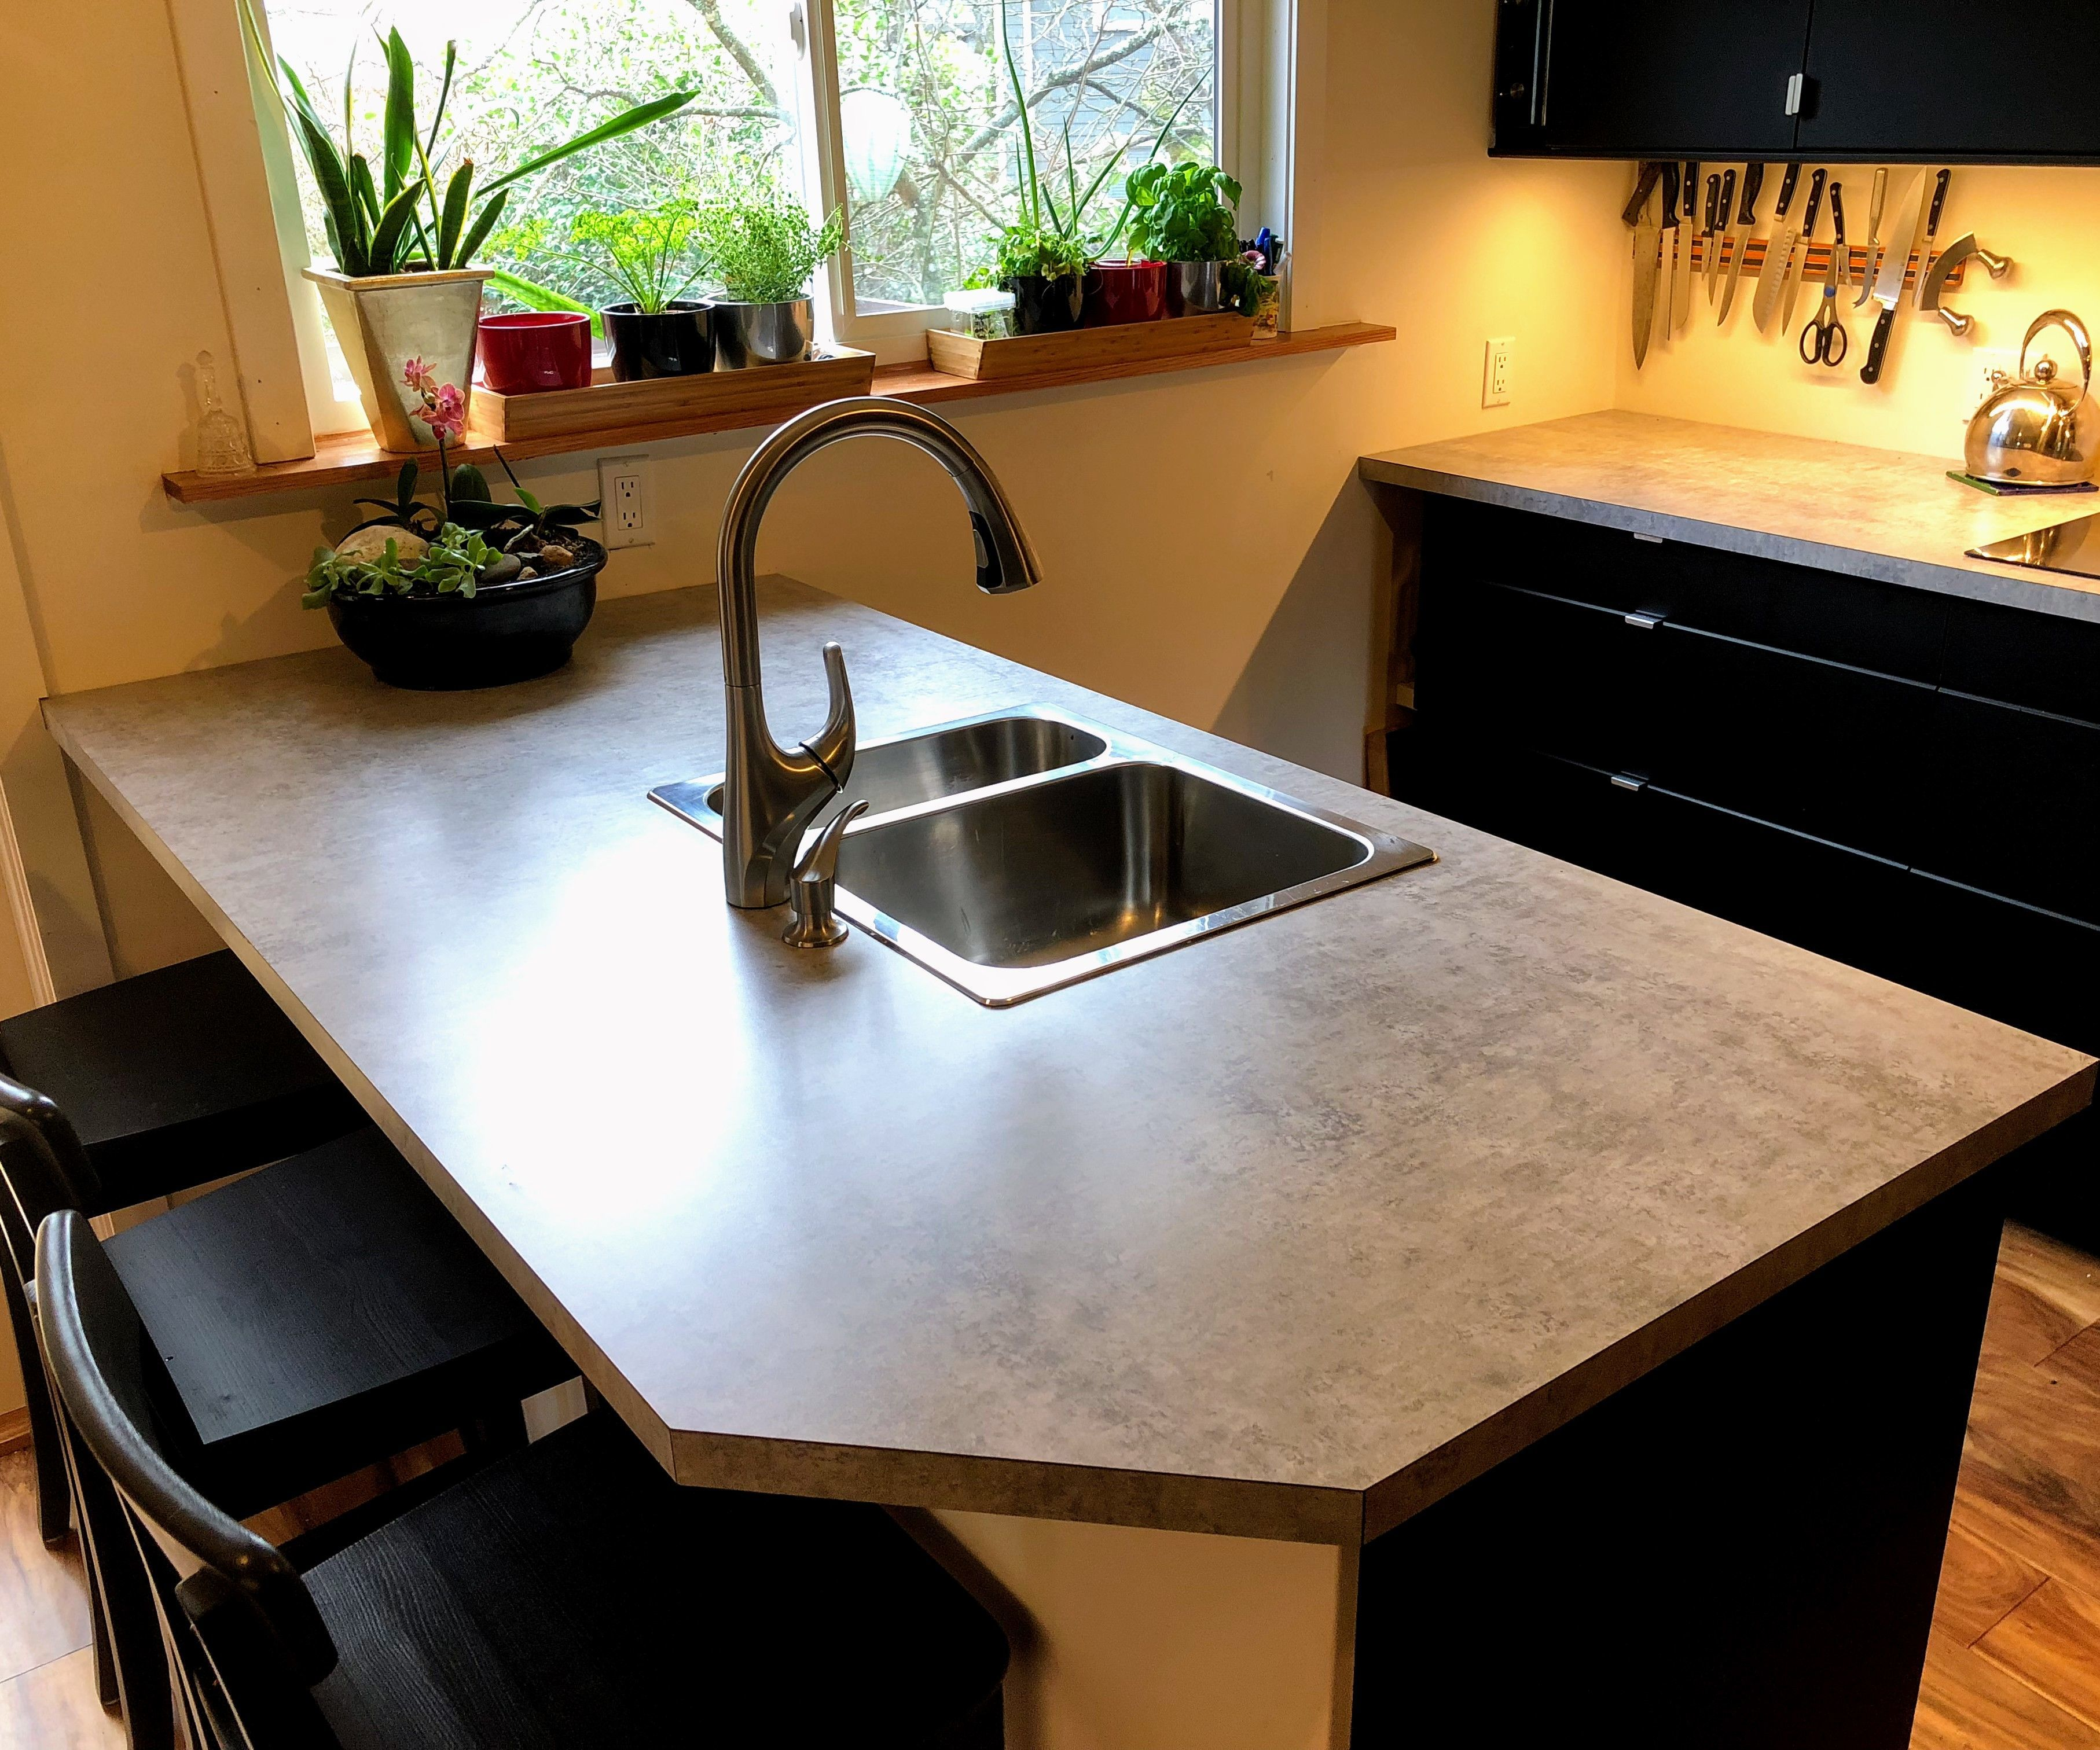 - DIY Laminate Countertops : 8 Steps (with Pictures) - Instructables